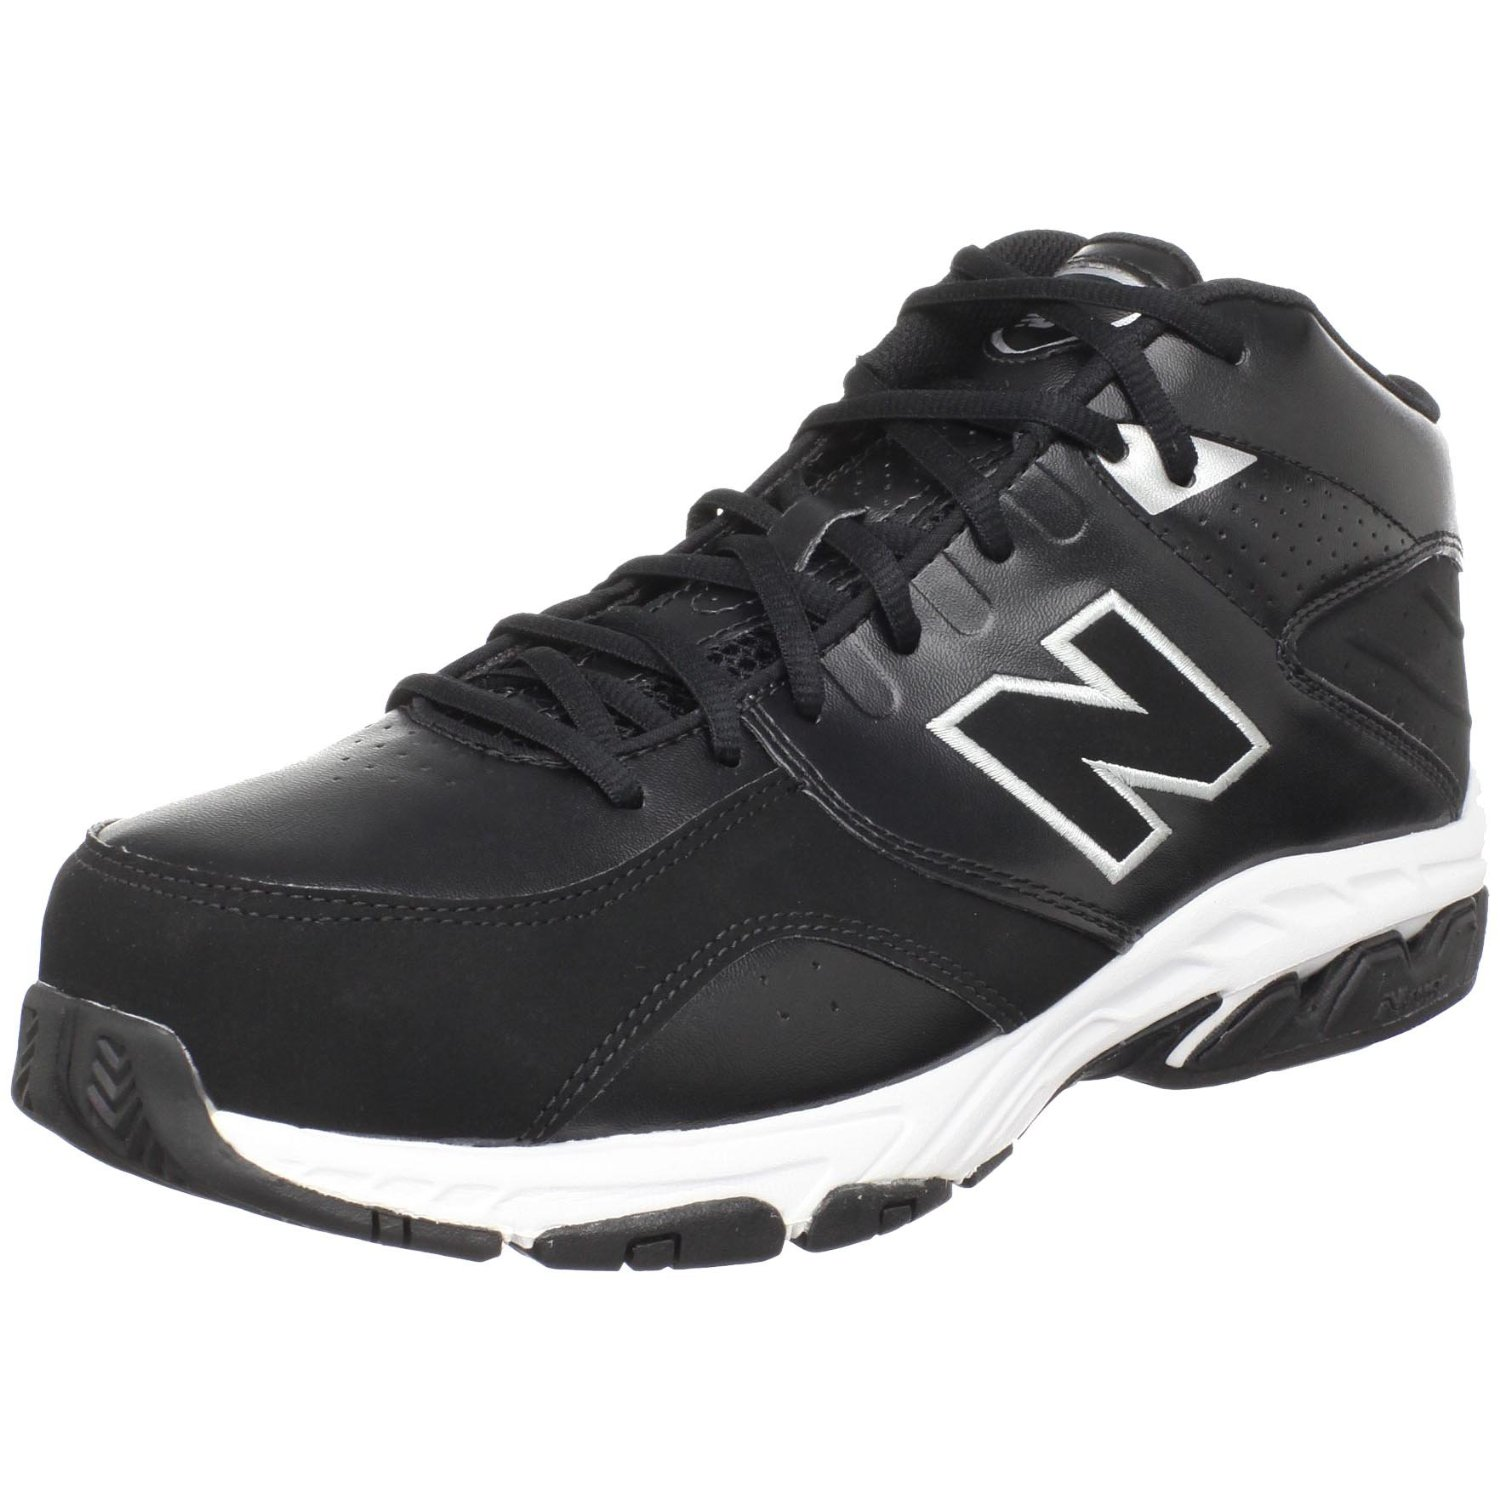 new balance men's bb 889 basketball shoe | Philly Diet ...